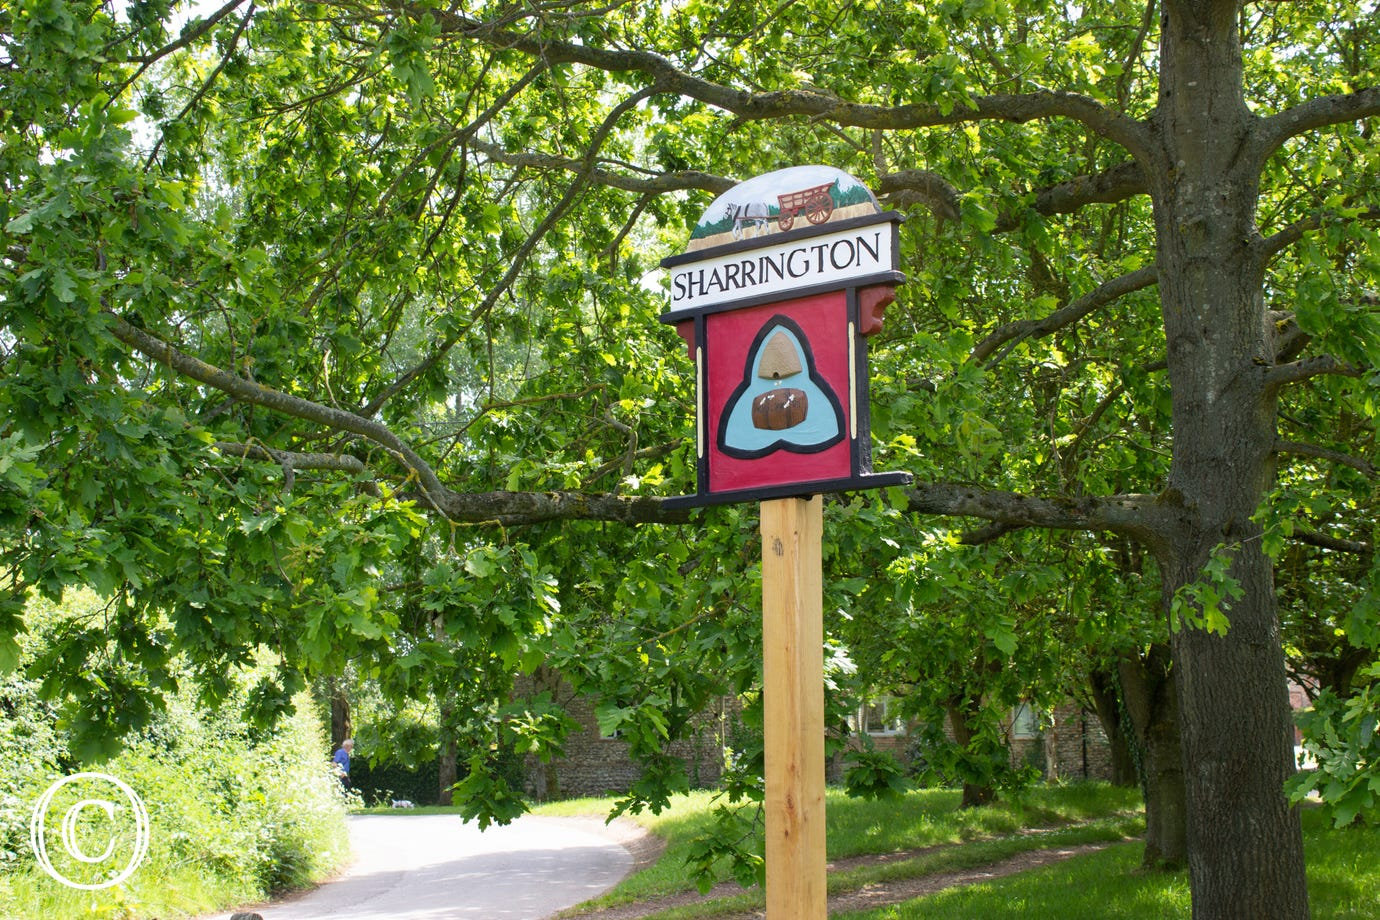 Sharrington village sign